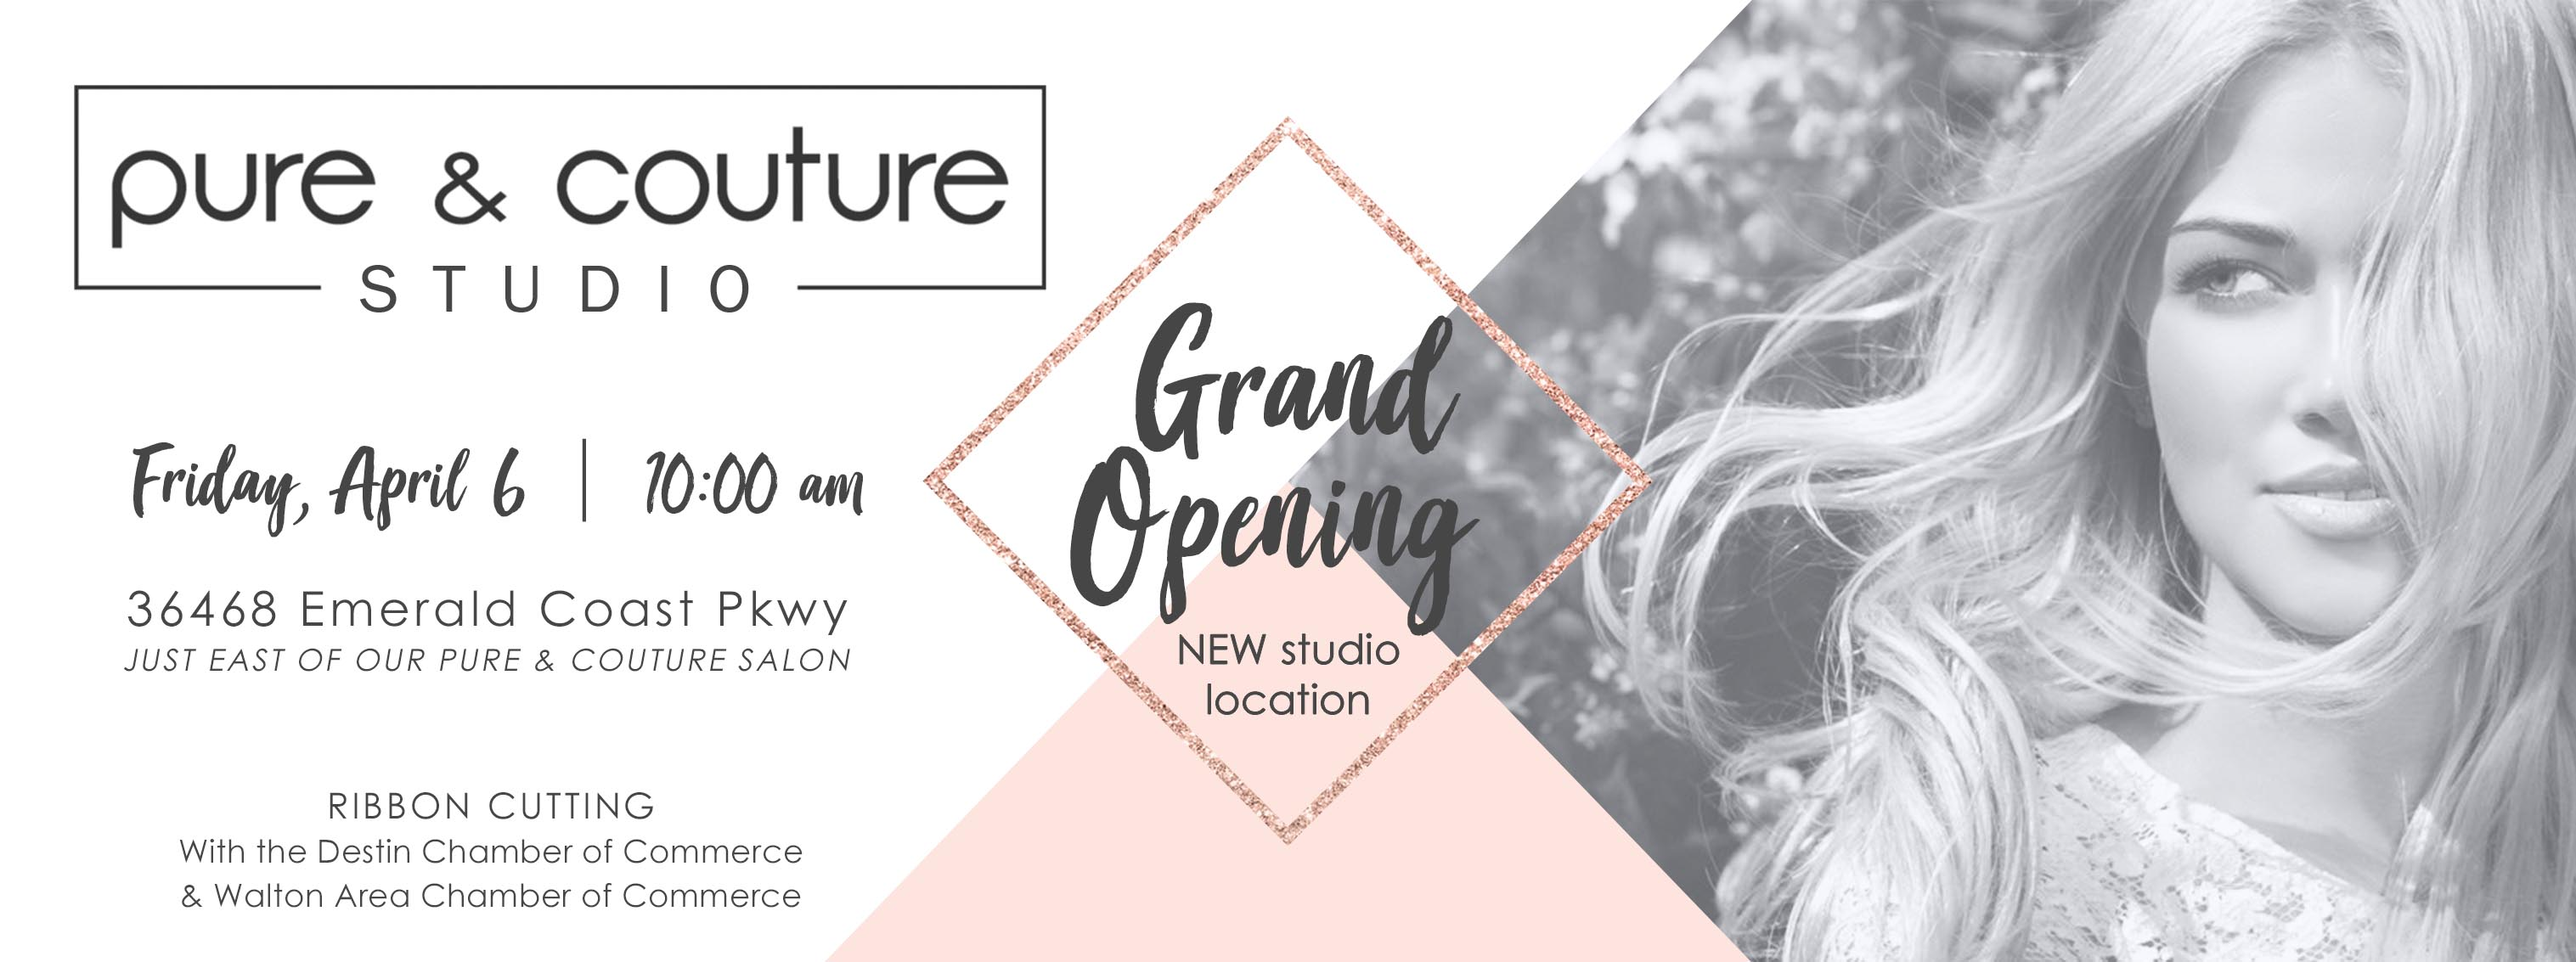 Pure & Couture Studio